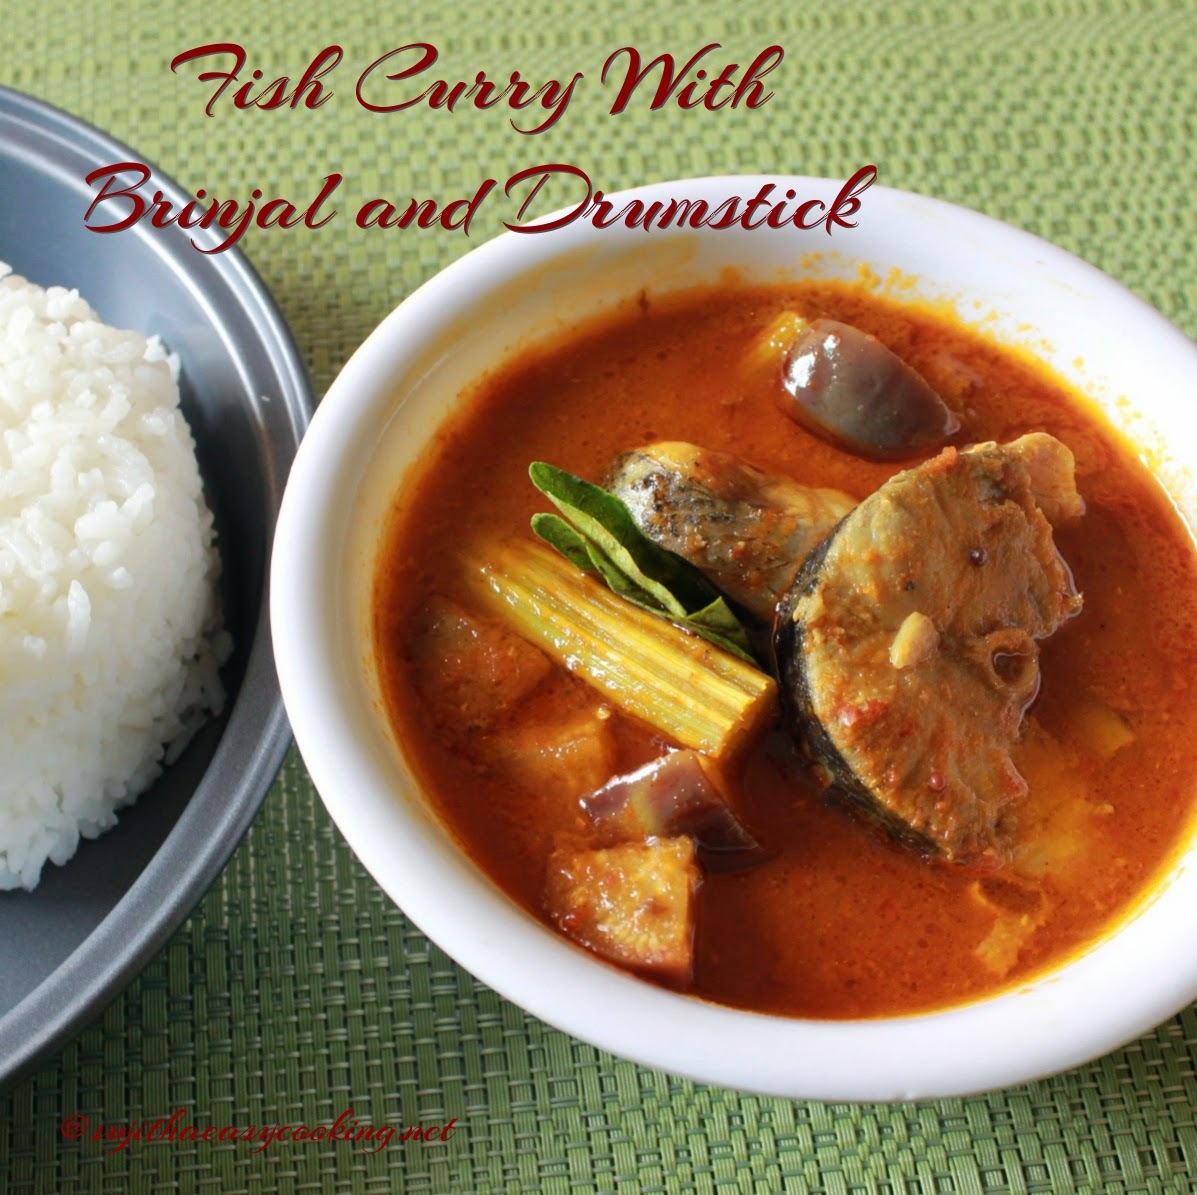 Fish Curry With Brinjal and Drumstick